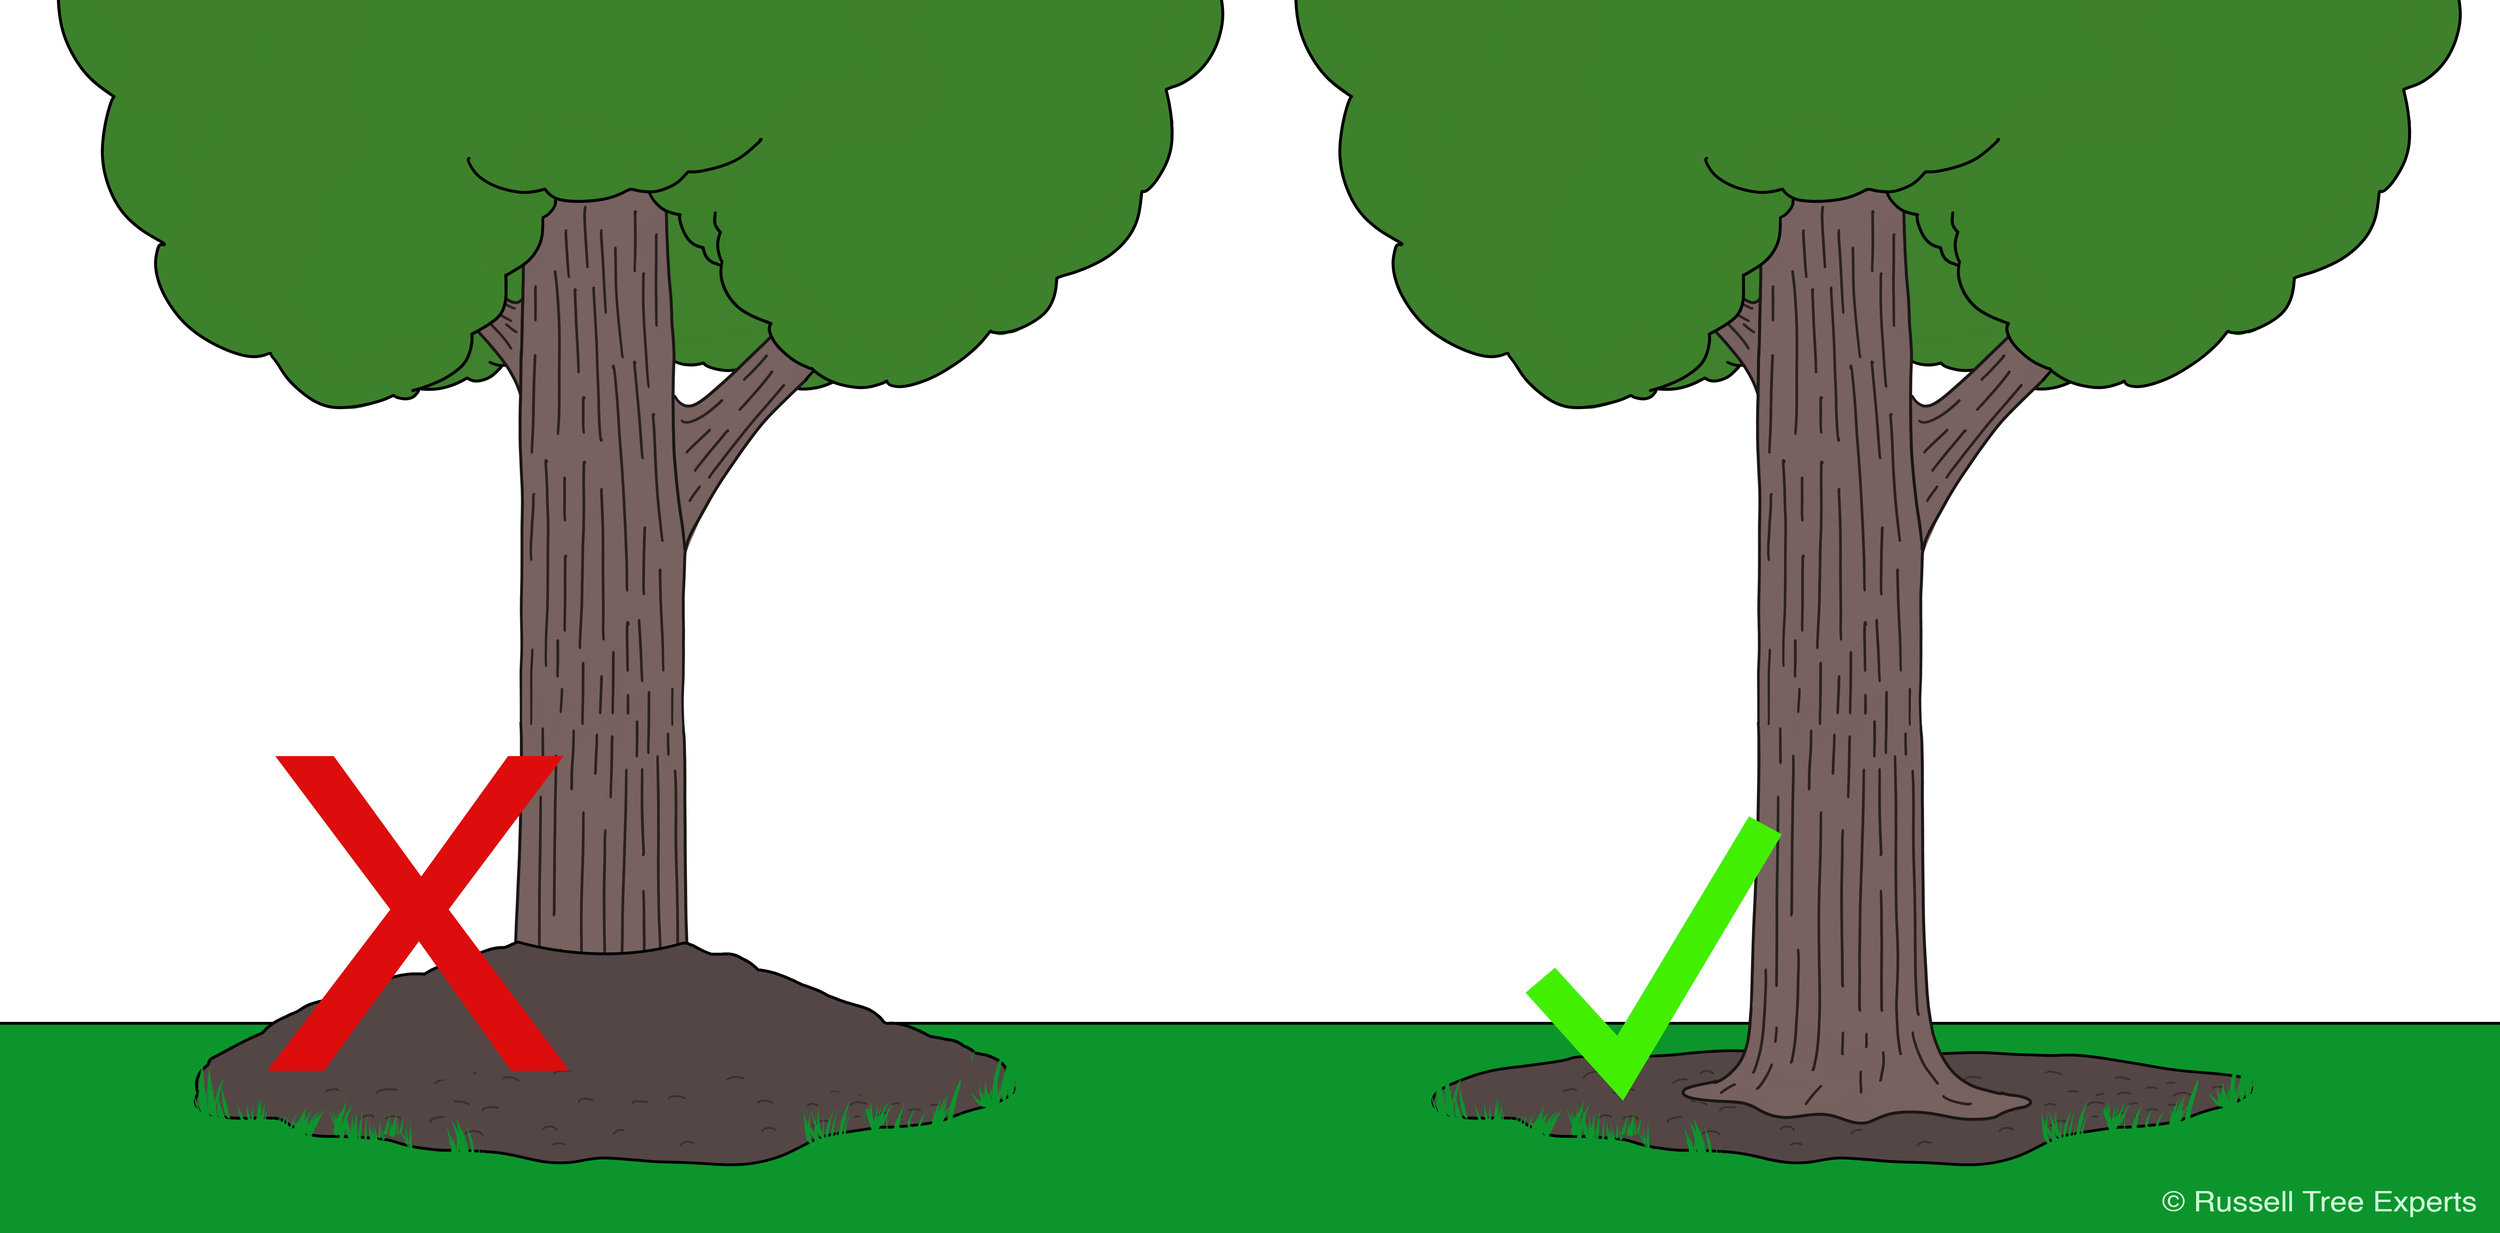 Bad vs. Good mulching techniques // Proper mulching around a tree keeps the root flare visible while having about 2 inches of mulch depth on the root zone.